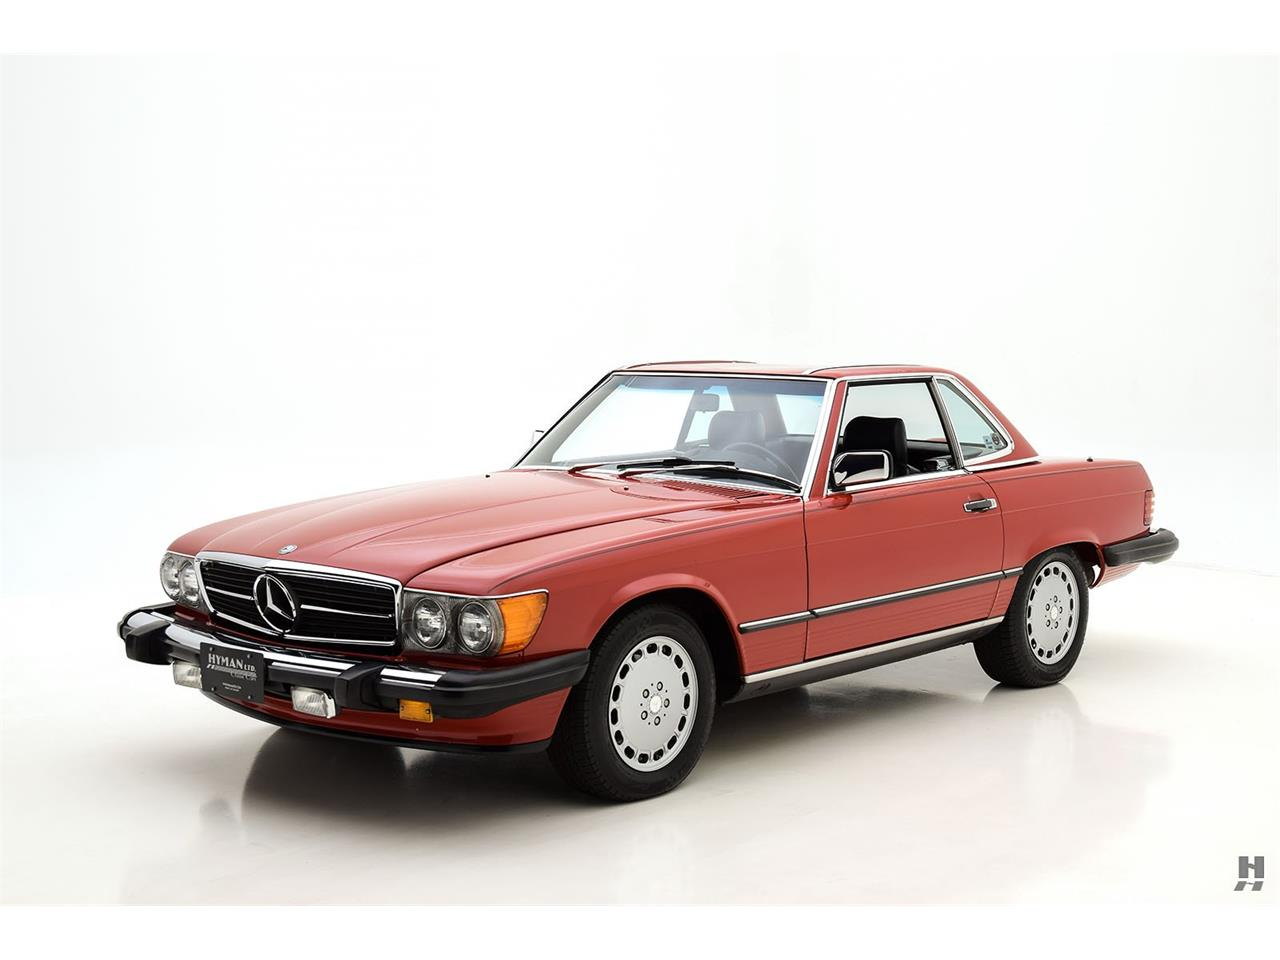 1987 Mercedes-Benz 560SL for sale in Saint Louis, MO – photo 15